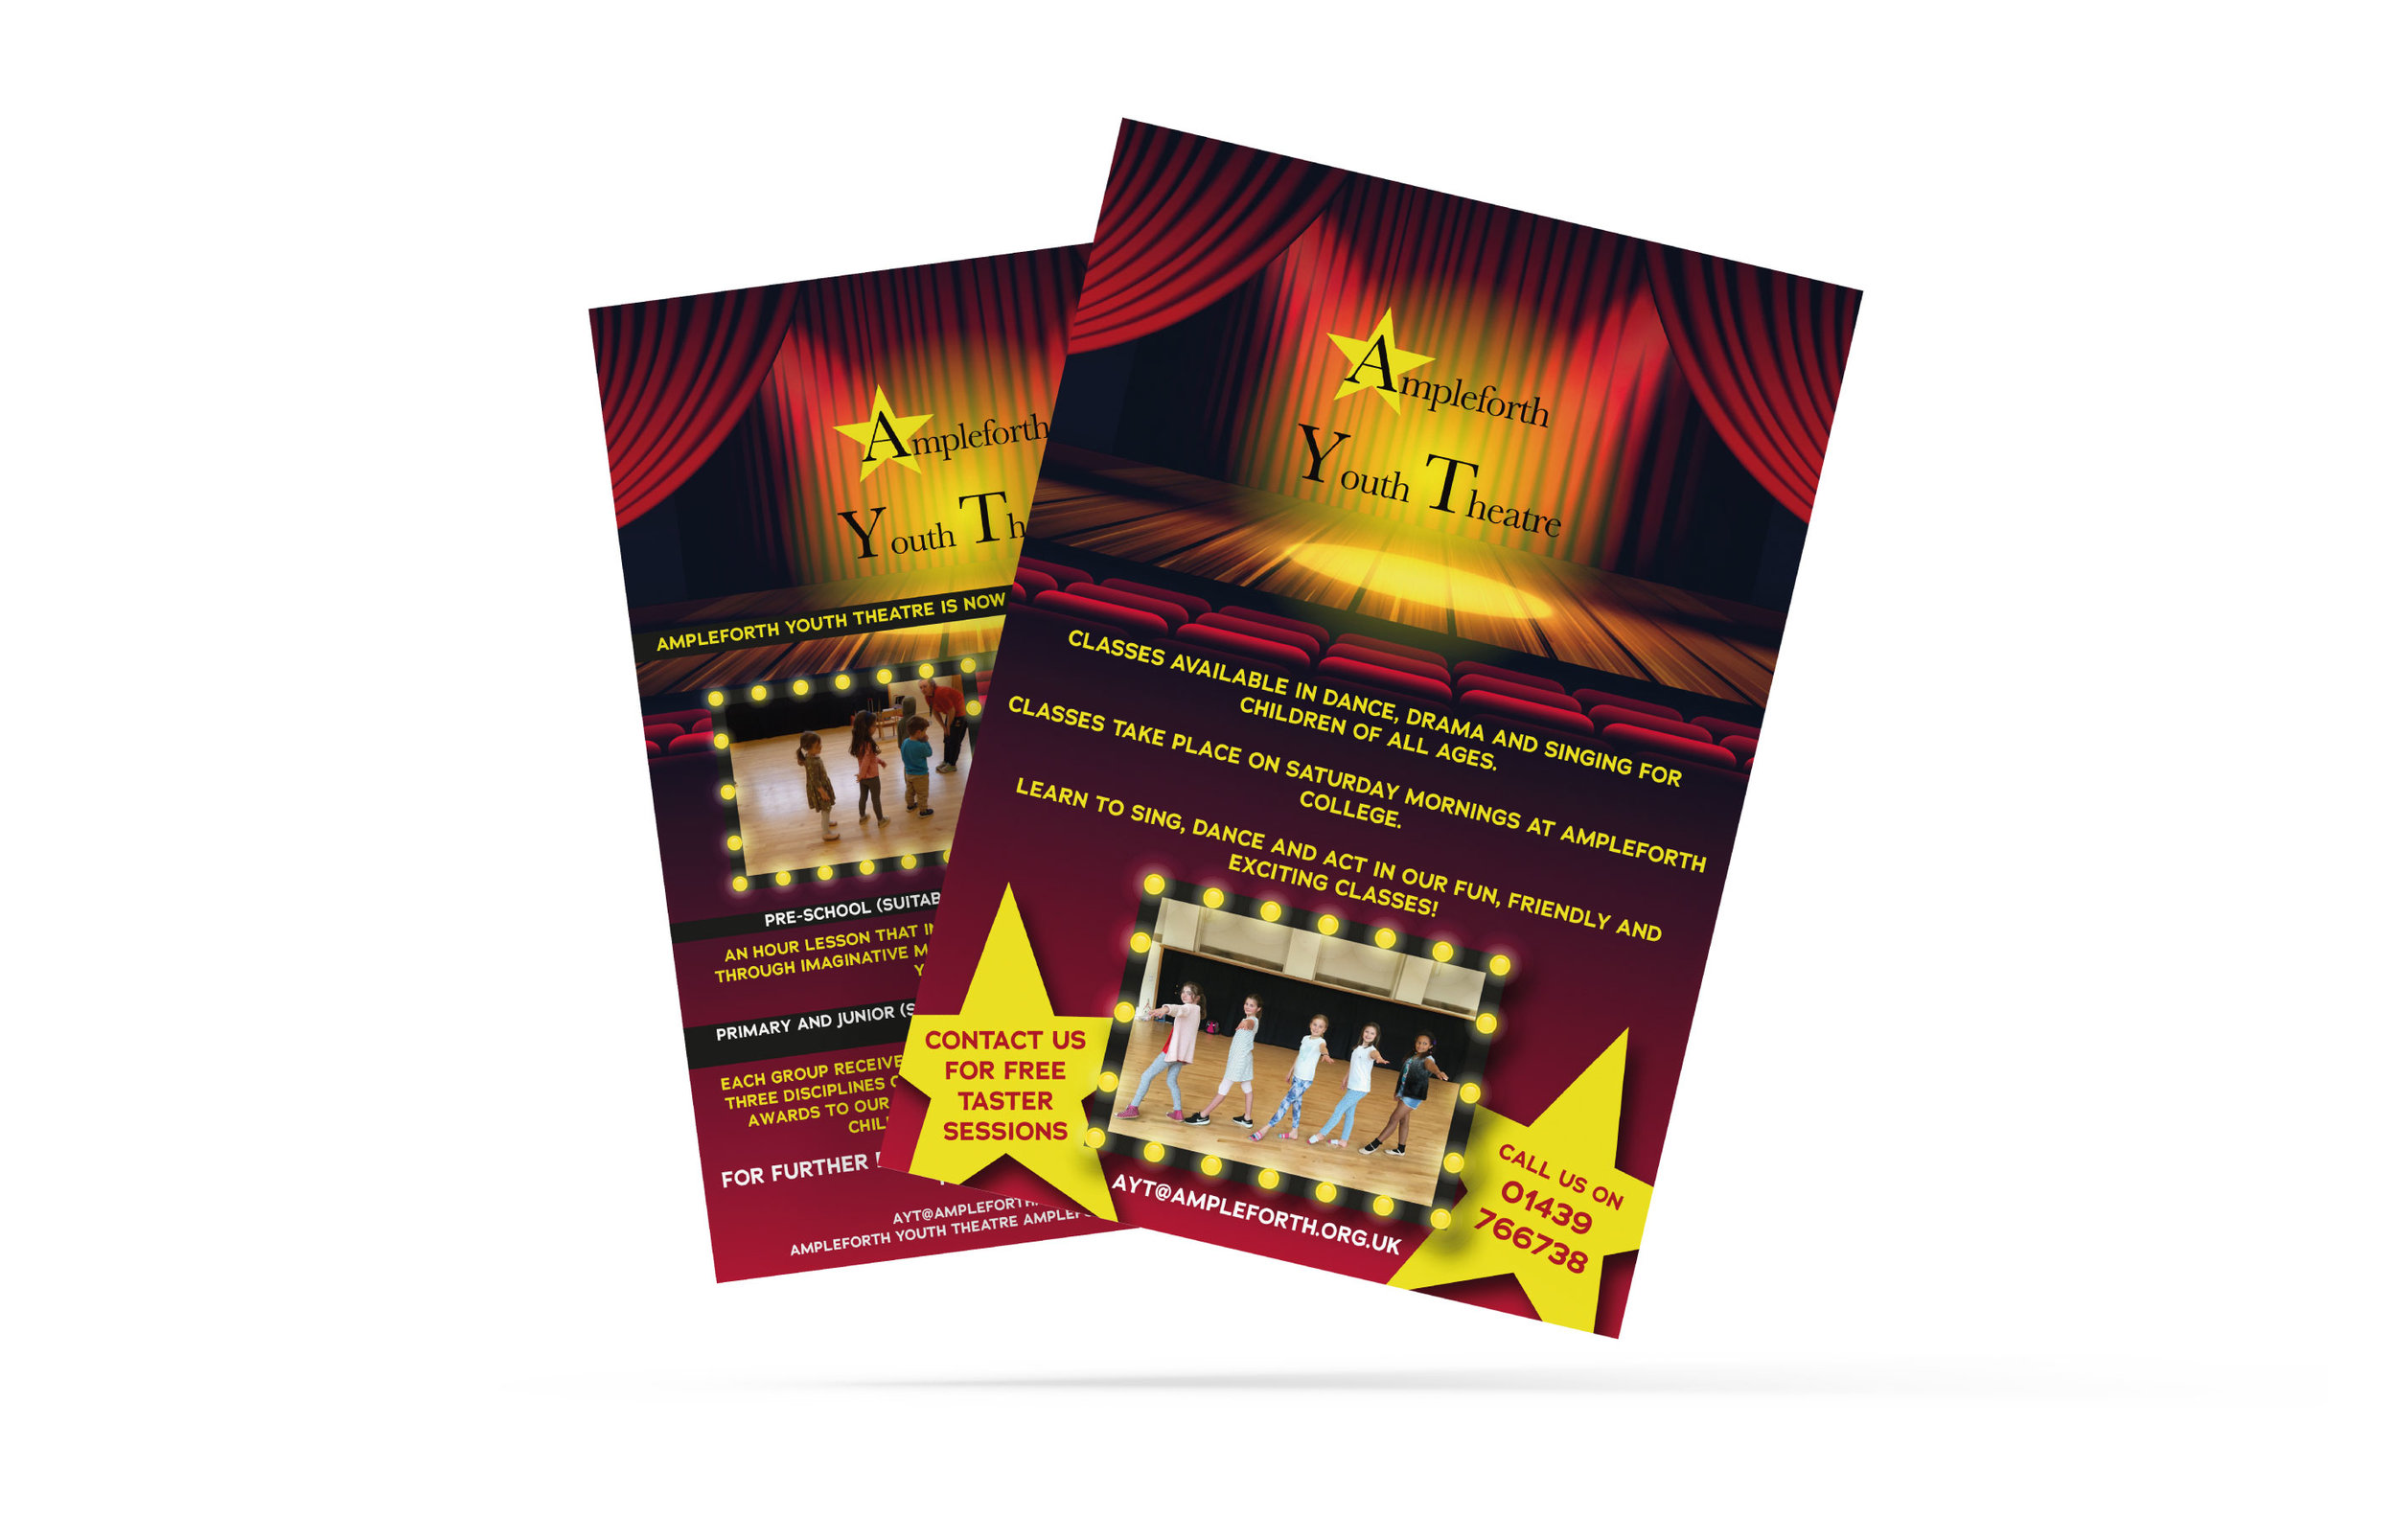 Ampleforth Youth Theatre Design and Print of A5 Flyers